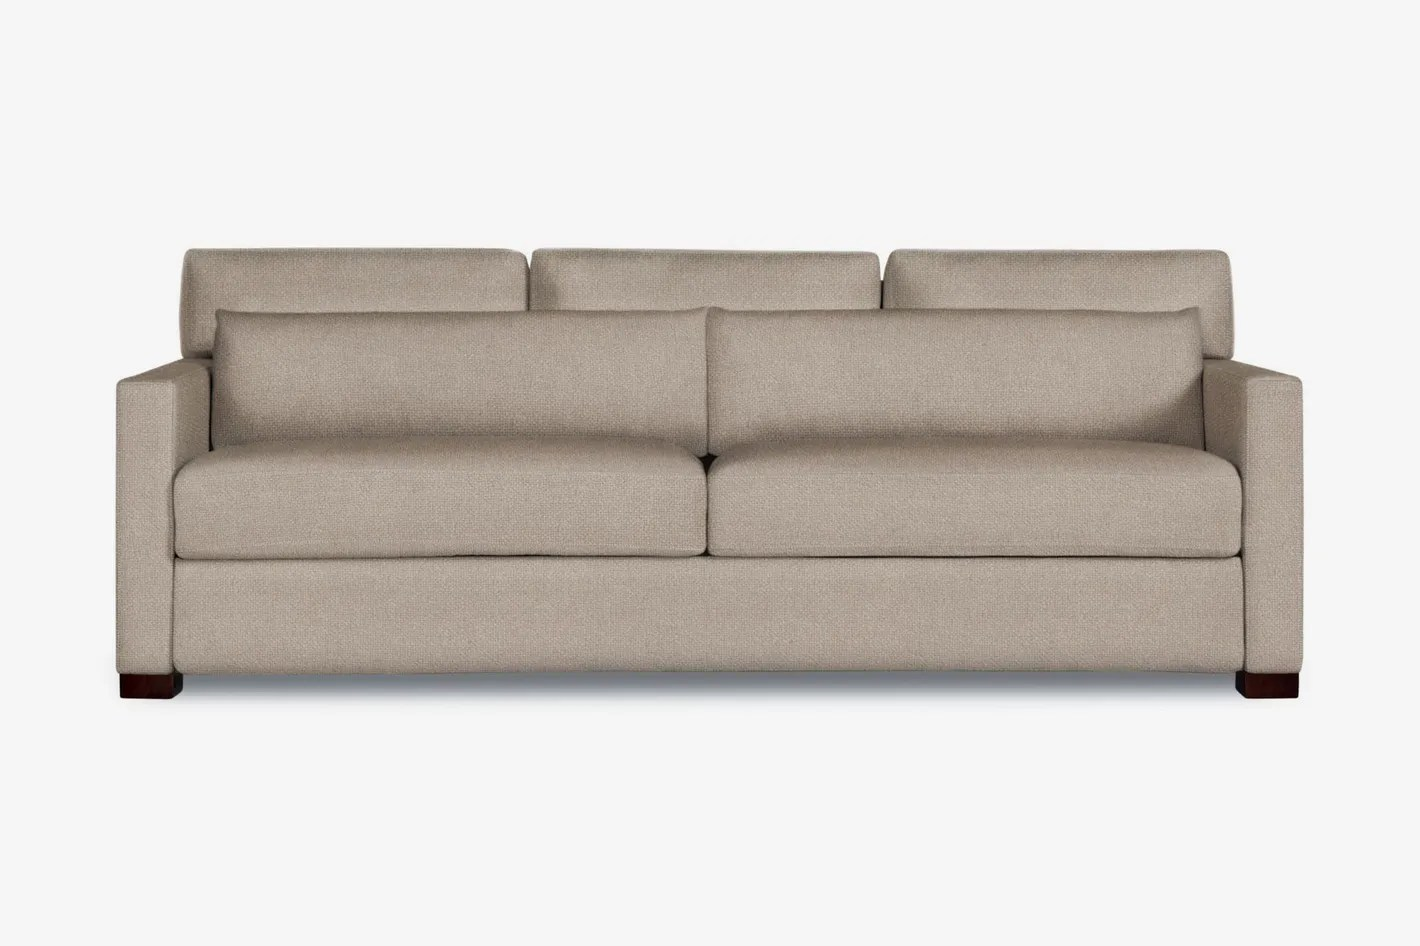 Most Comfortable Convertible Couches Vesper King Sleeper Sofa